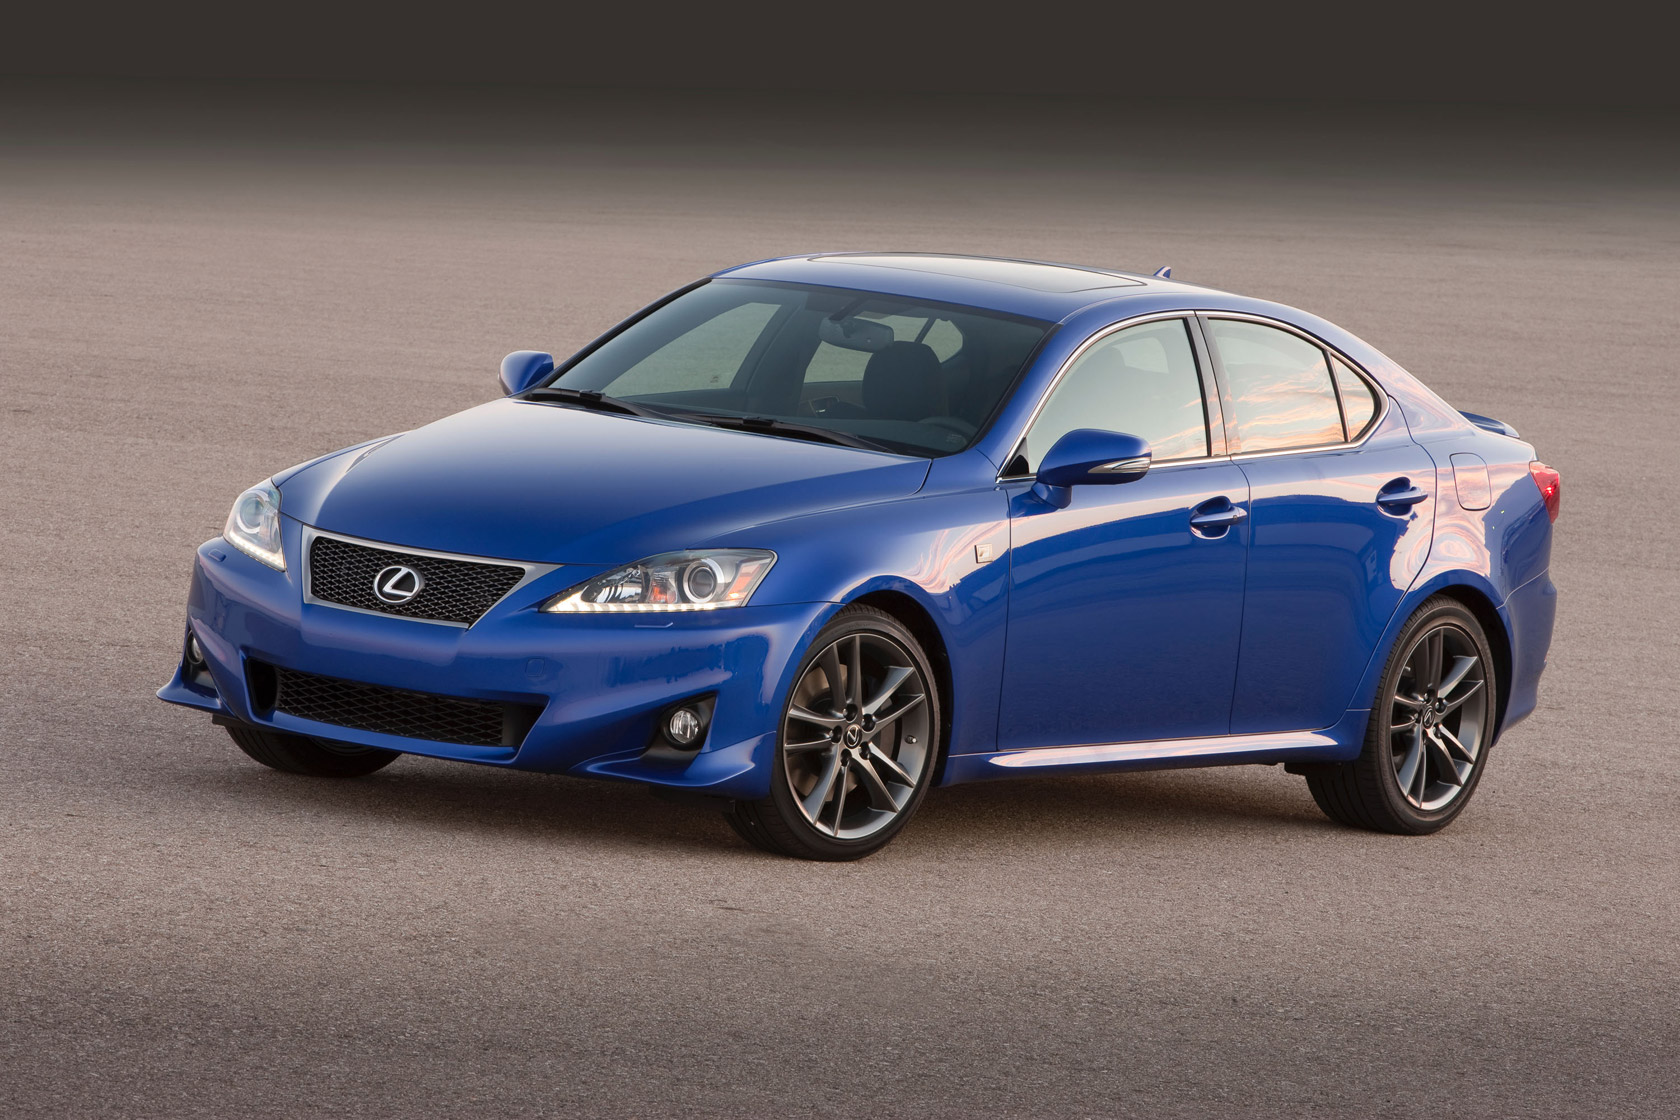 2012 Nissan Maxima 3 5s Review likewise 37656 April 2015 Focus St Month Contest Winner Boosted blue14 also Showthread as well Facelifted F10 Bmw M5 Launched Details Price Pics furthermore New Generation Fiat Punto Fiat Argo 12194310. on blue led grille lights